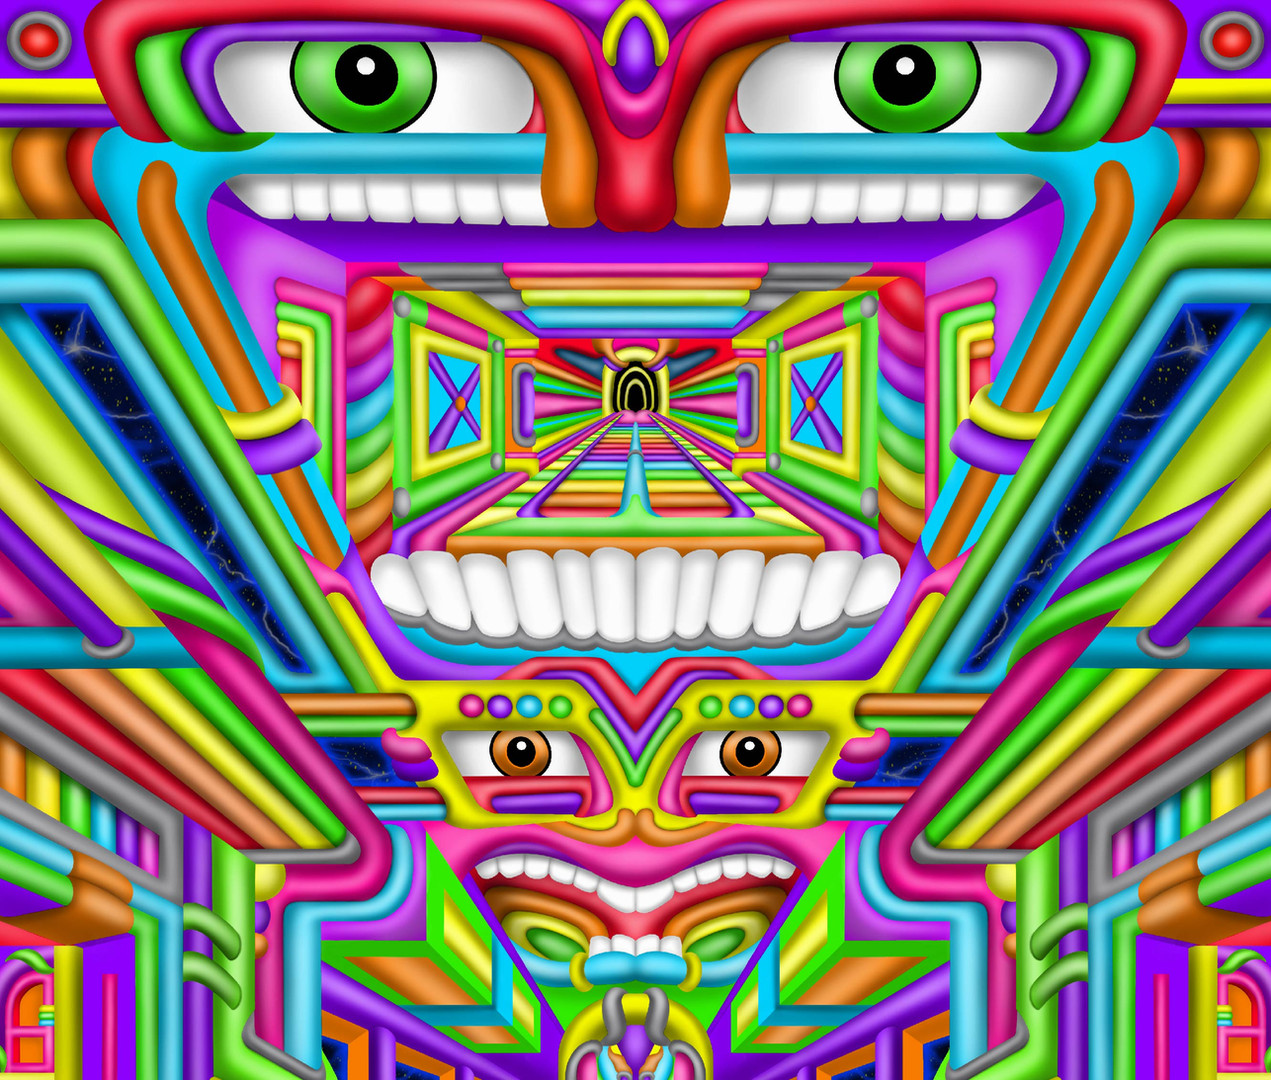 Psychedelic DMT trip art by Ayjay